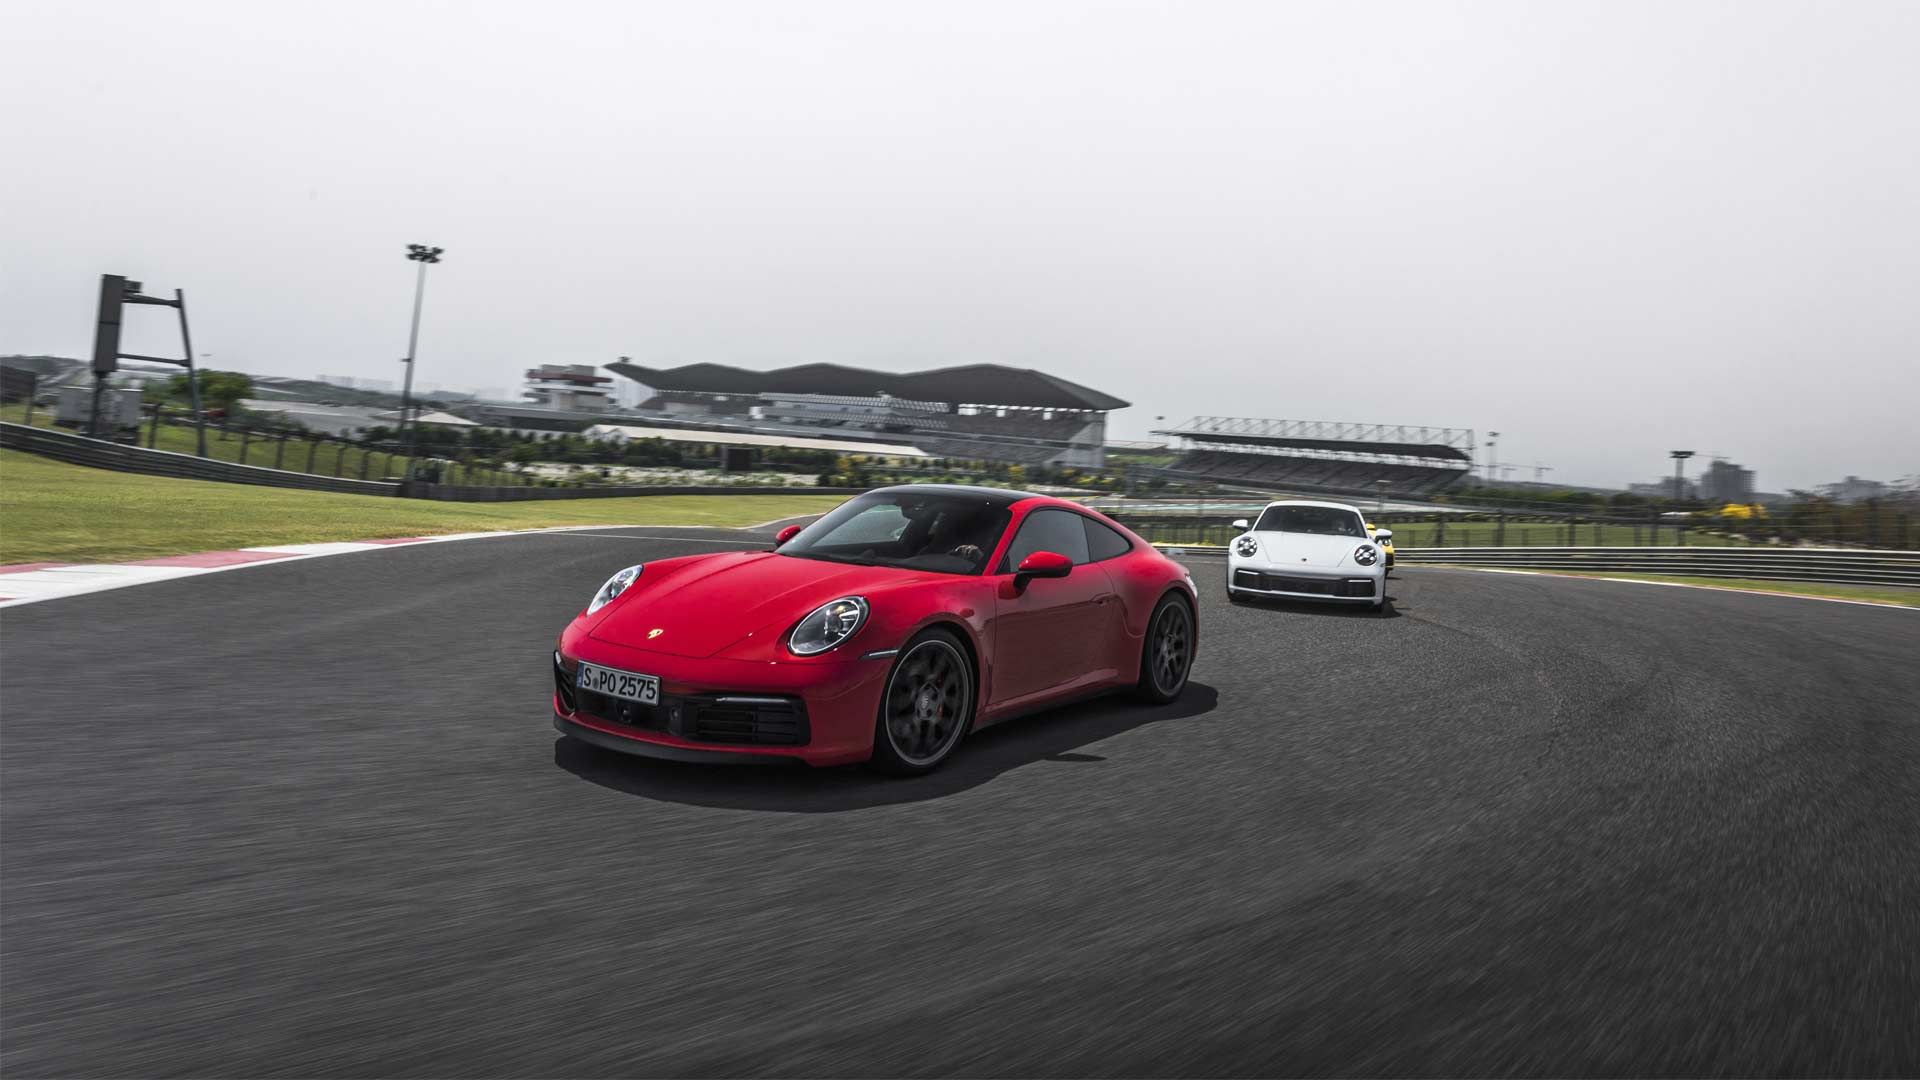 8th-generation-of-the-Porsche-911-India-launch-2019-Buddh-International-Circuit_2